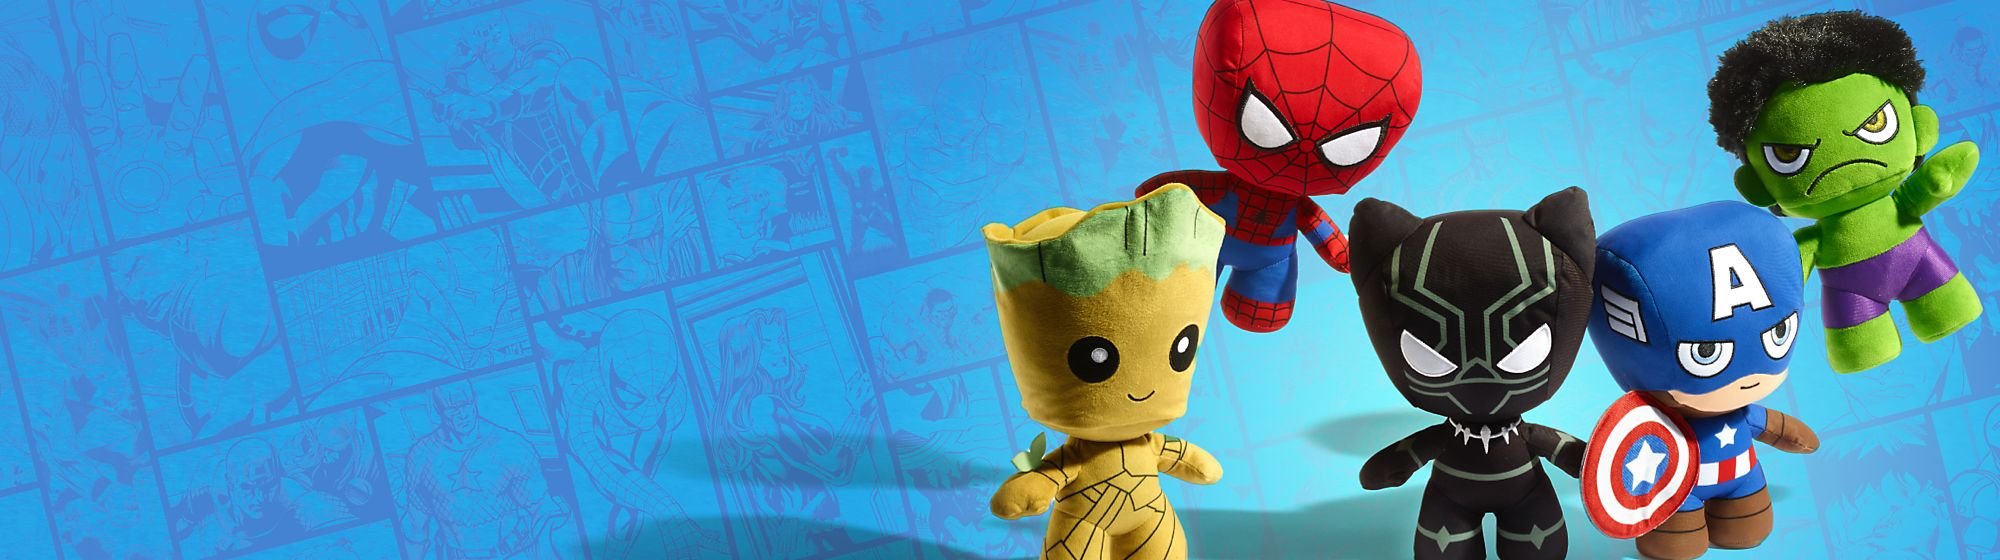 Marvel Toys Heroic playtime and epic adventures with our range of Marvel toys and action figures